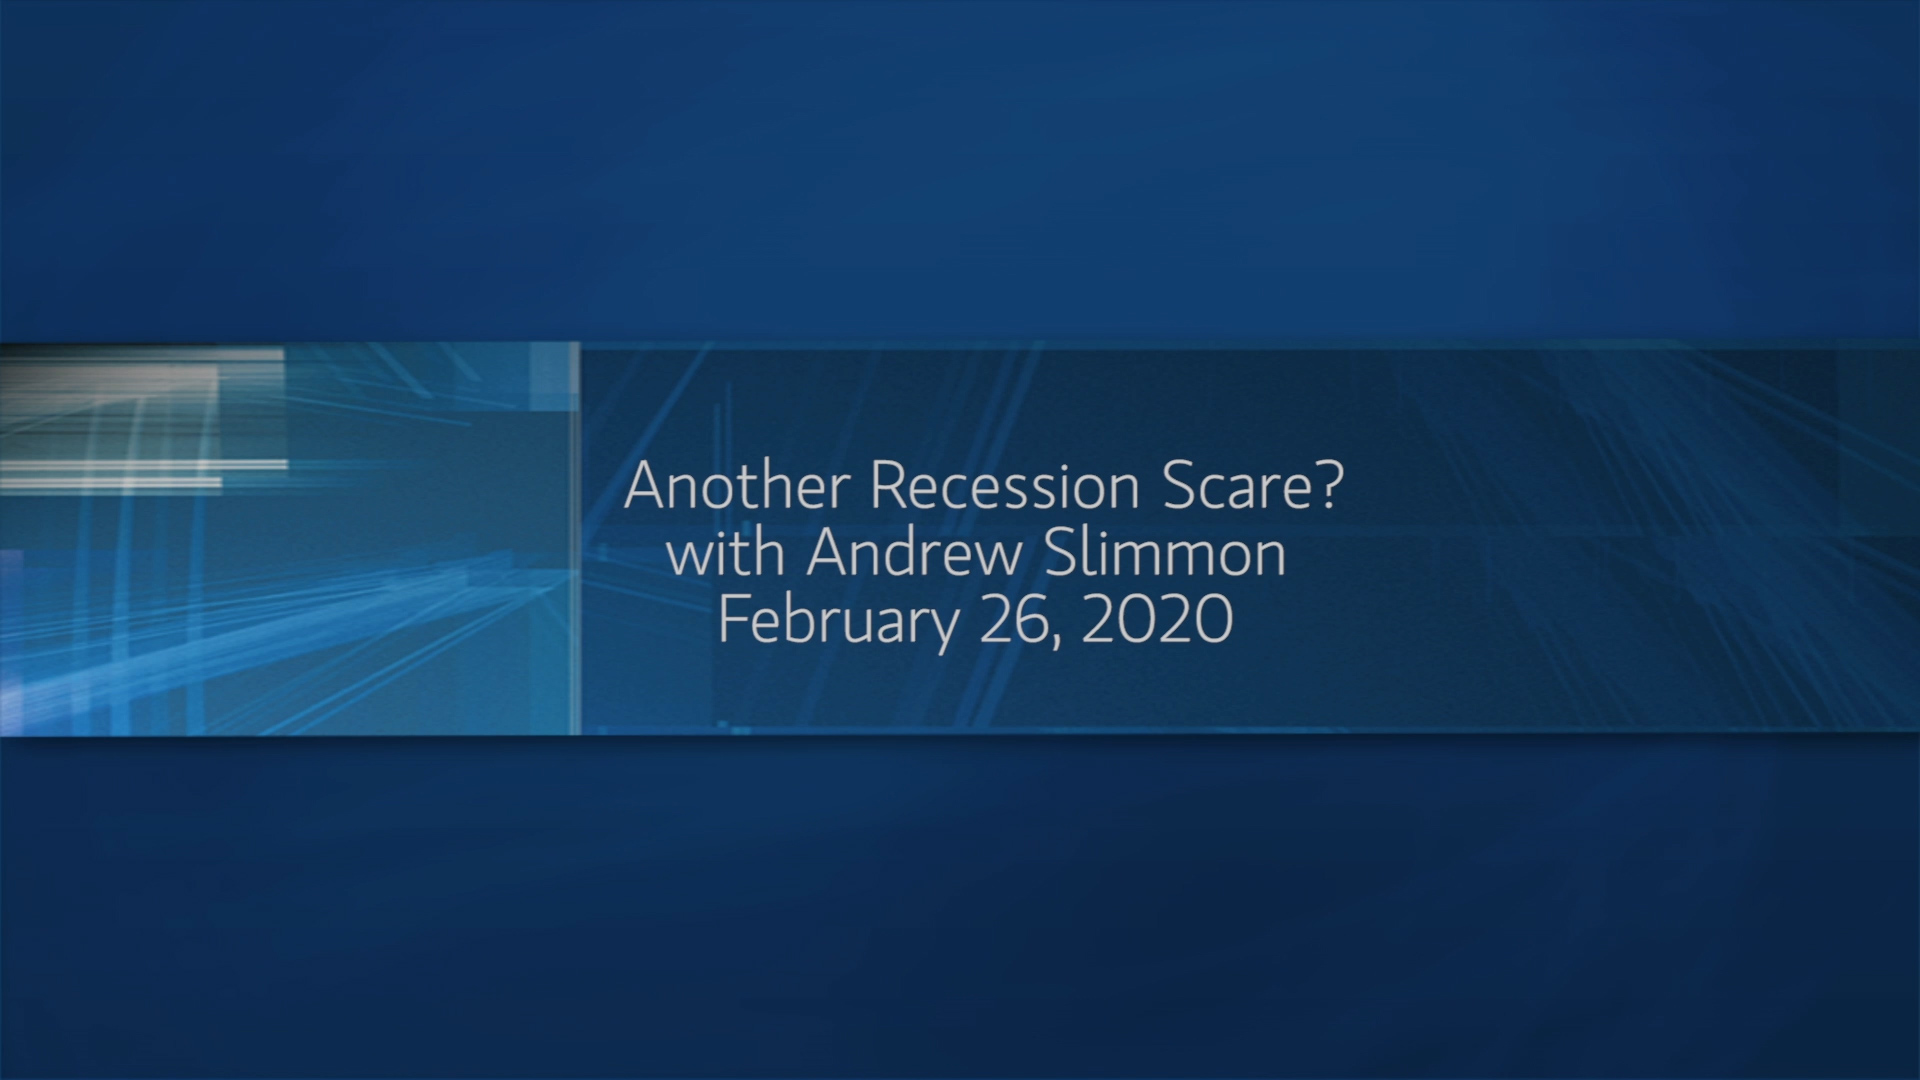 Another Recession Scare?